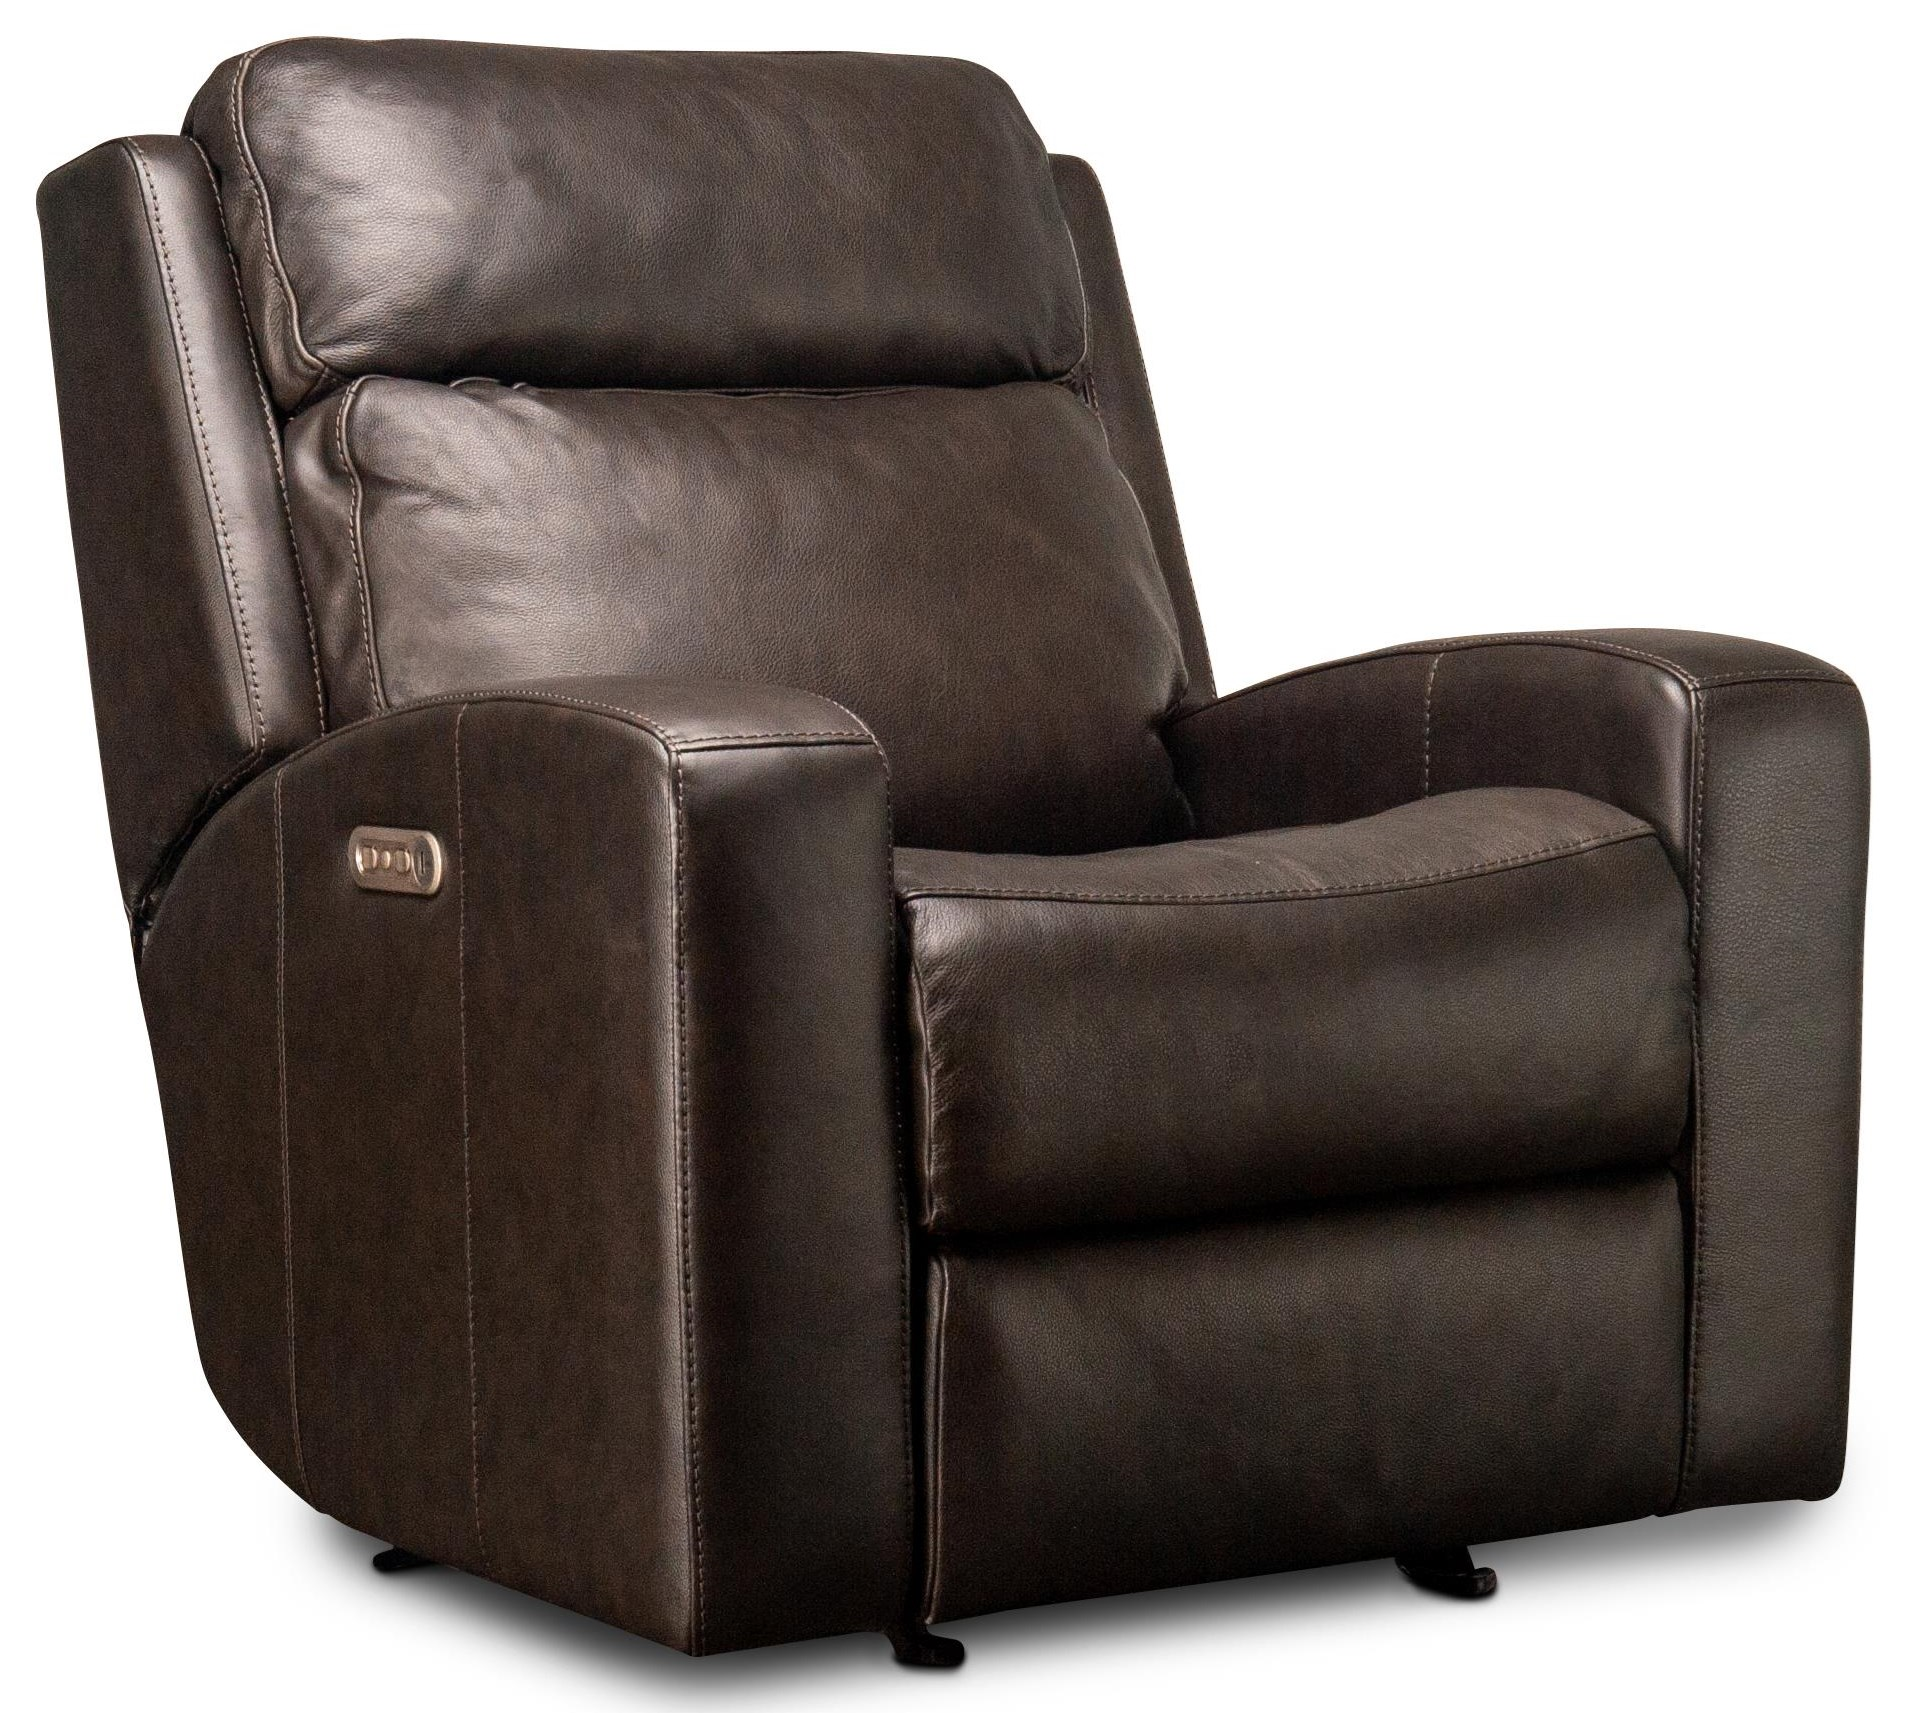 Cordelia Cordelia Leather Match Power Glider Recliner by Flexsteel Wynwood Collection at Morris Home